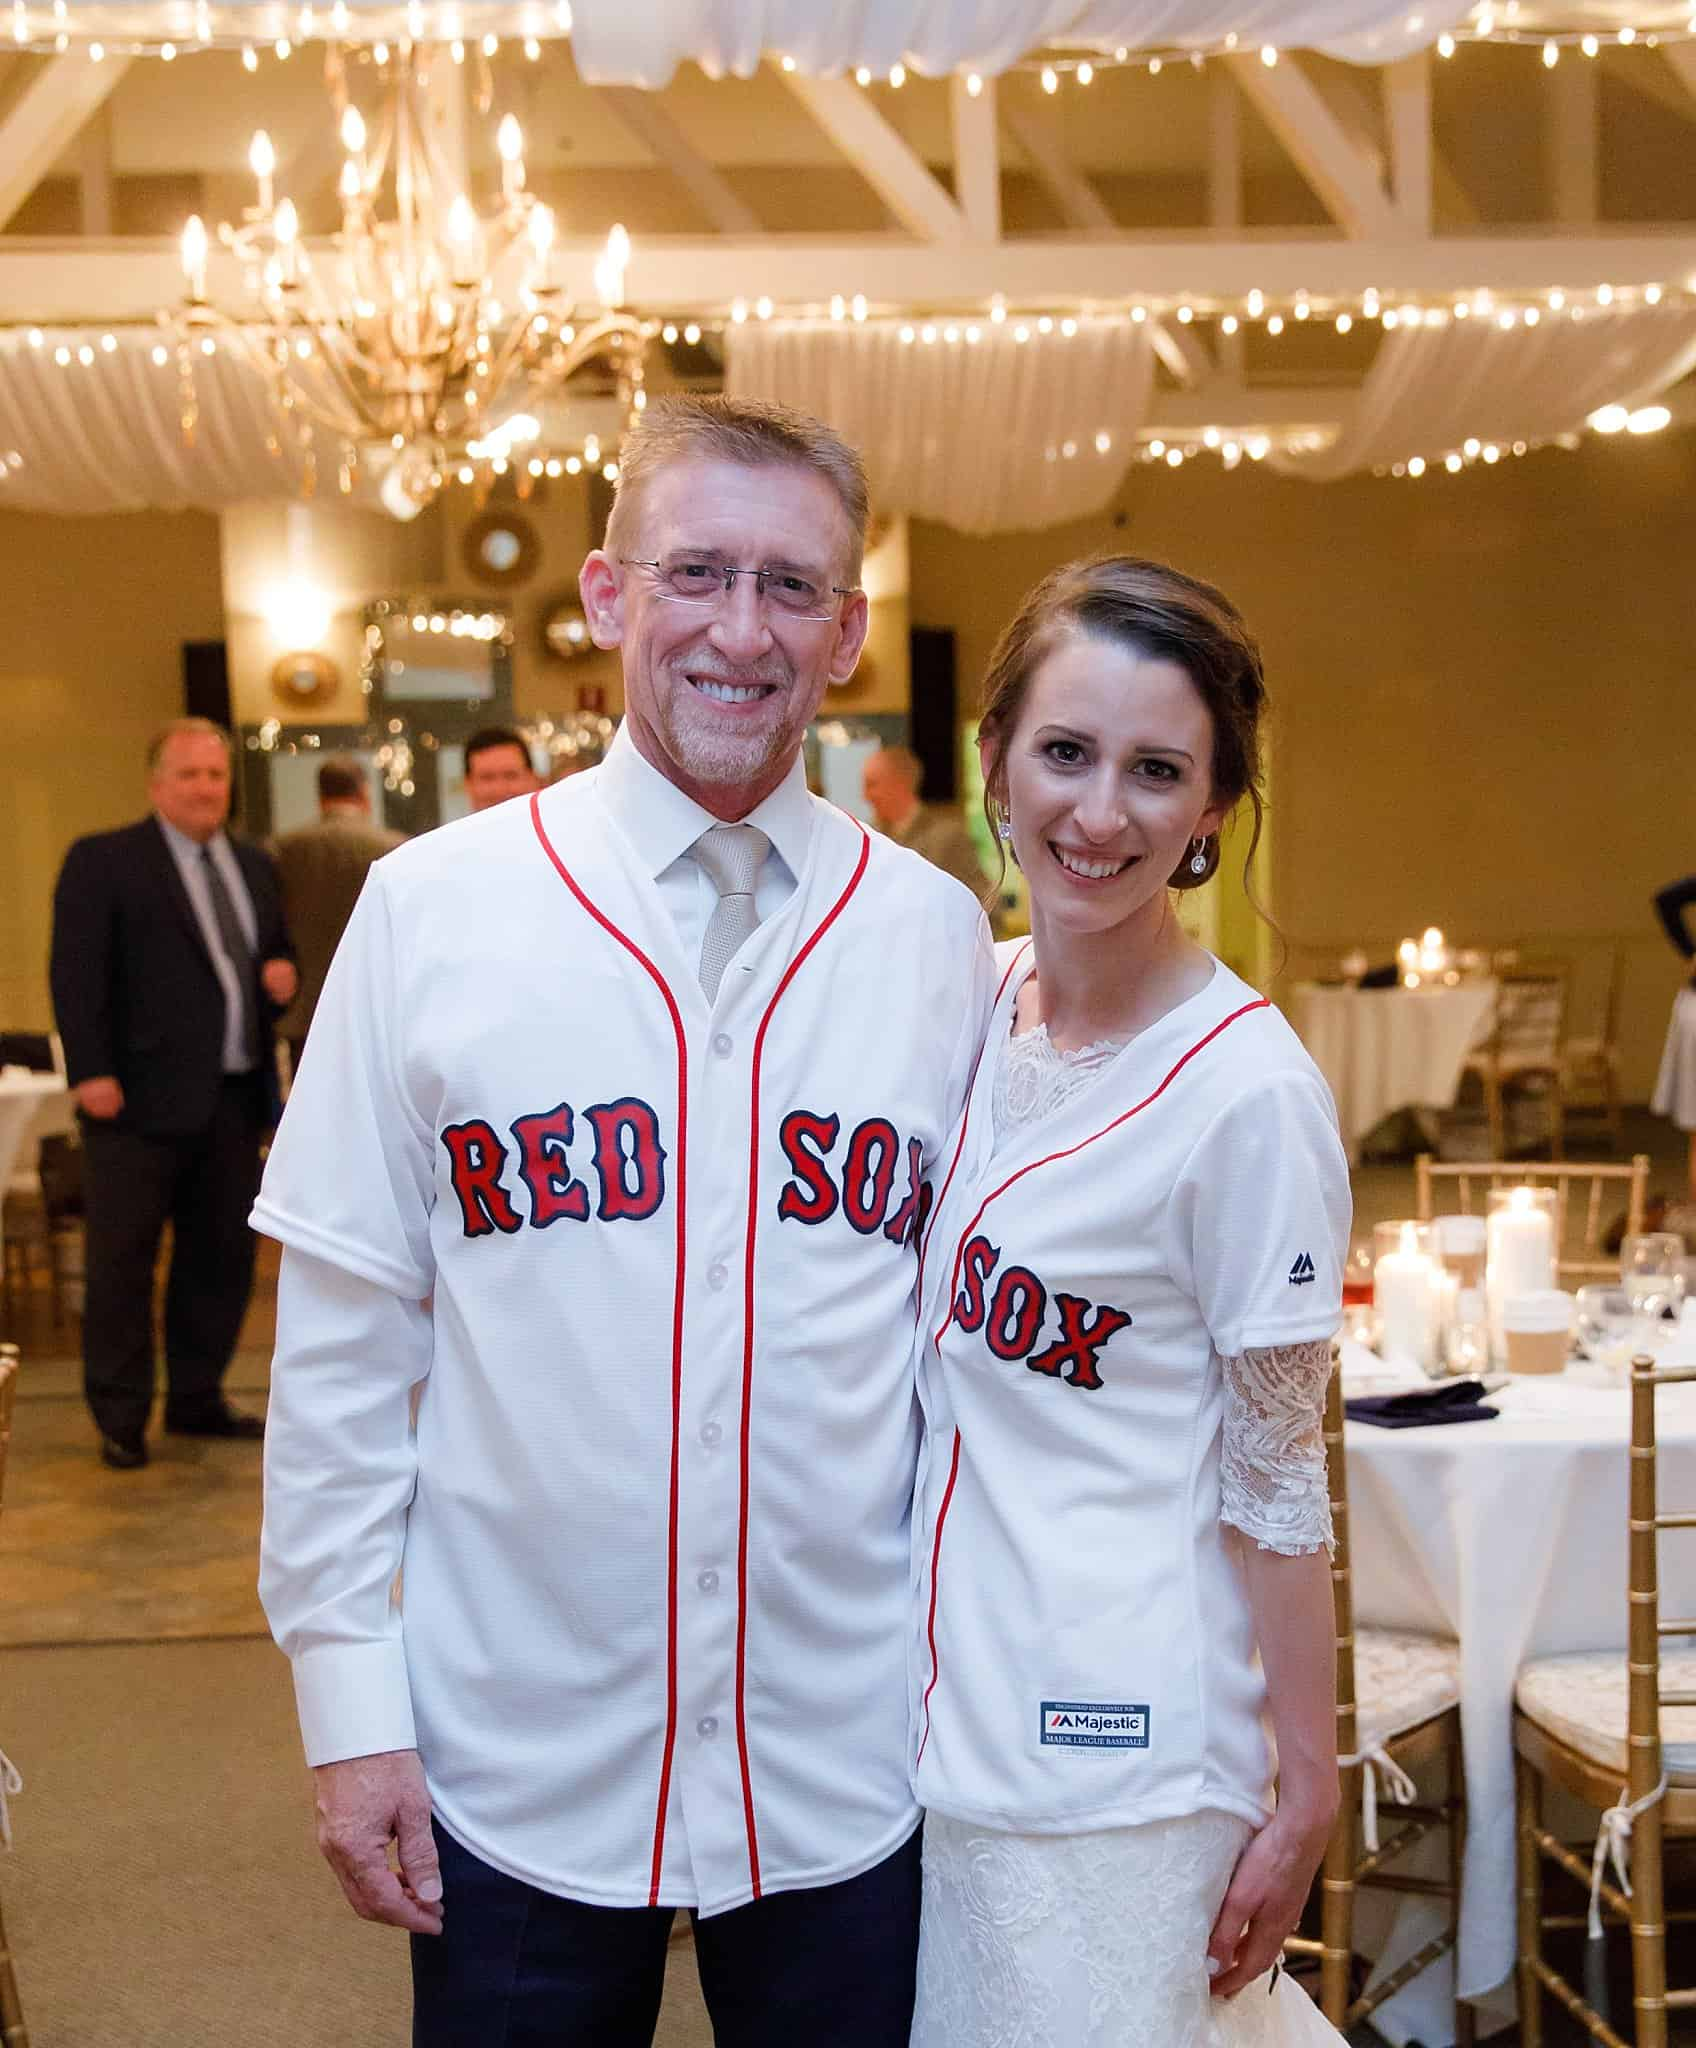 Bride and Groom pose in Red Sox jerseys